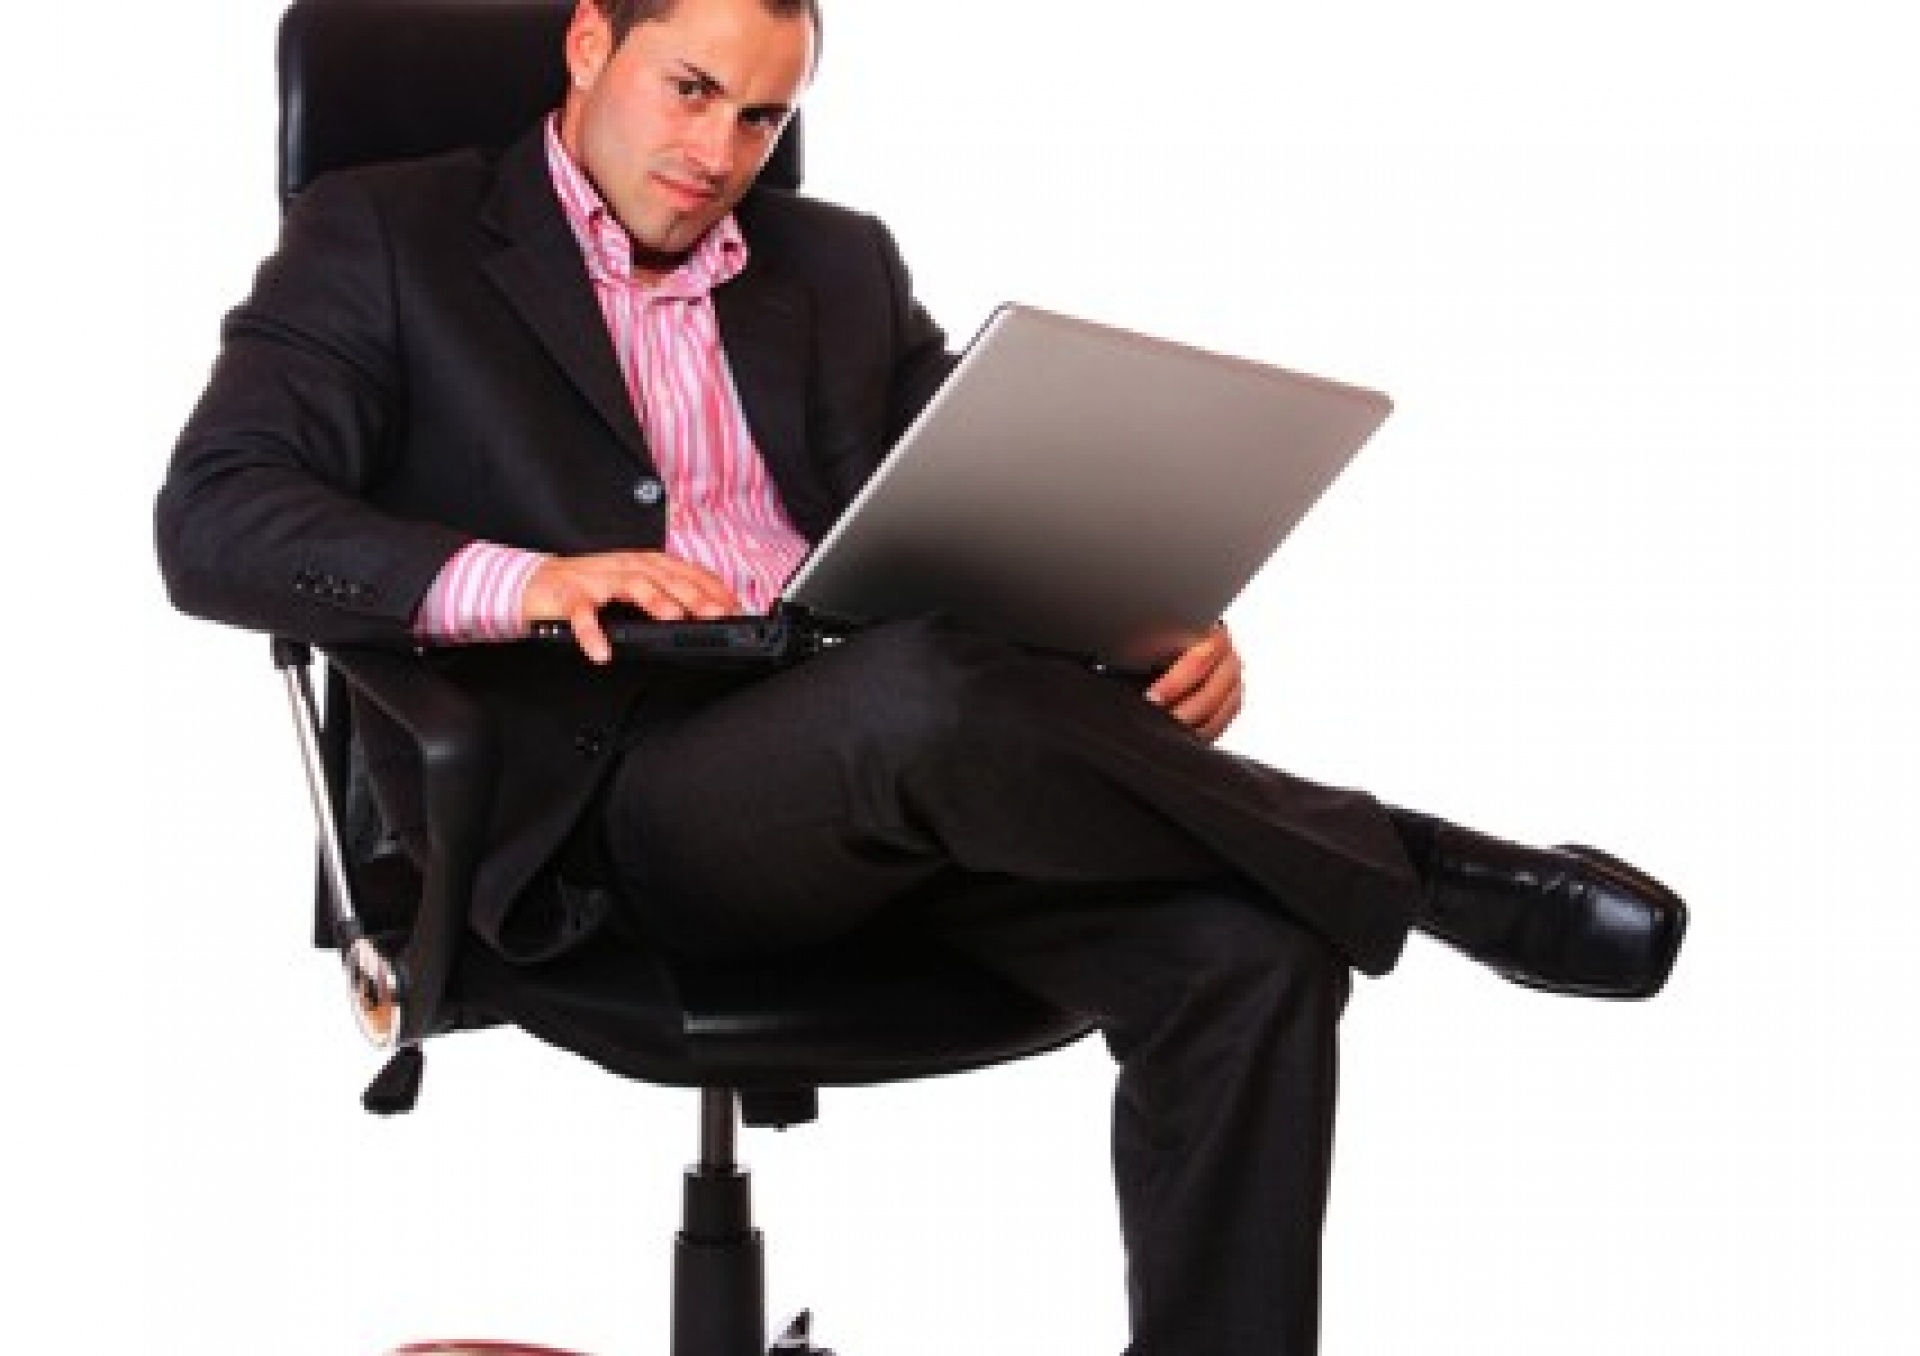 What's your office sitting posture like?--